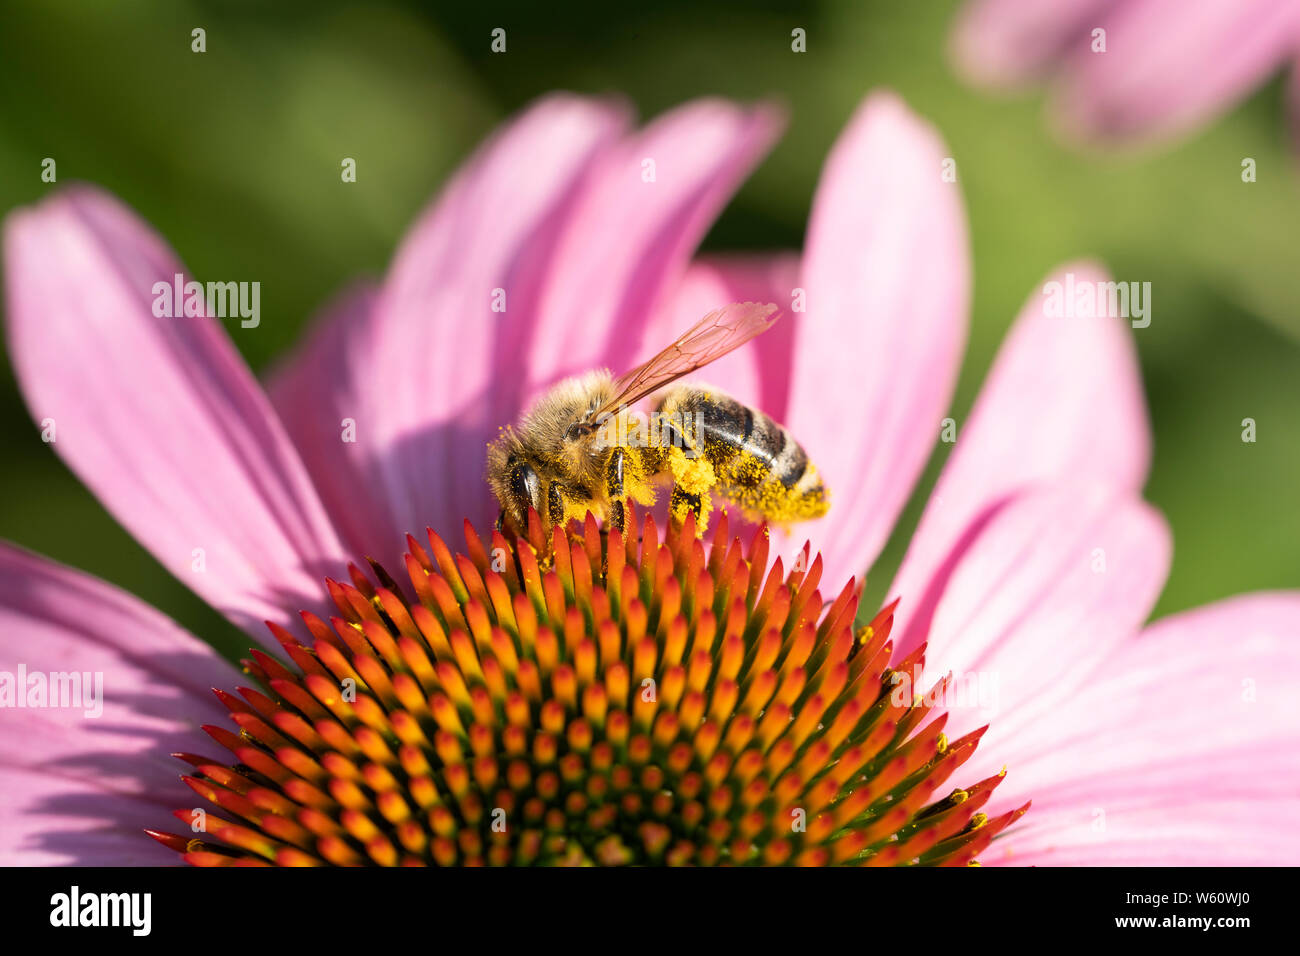 a-worker-european-honey-bee-apis-mellife